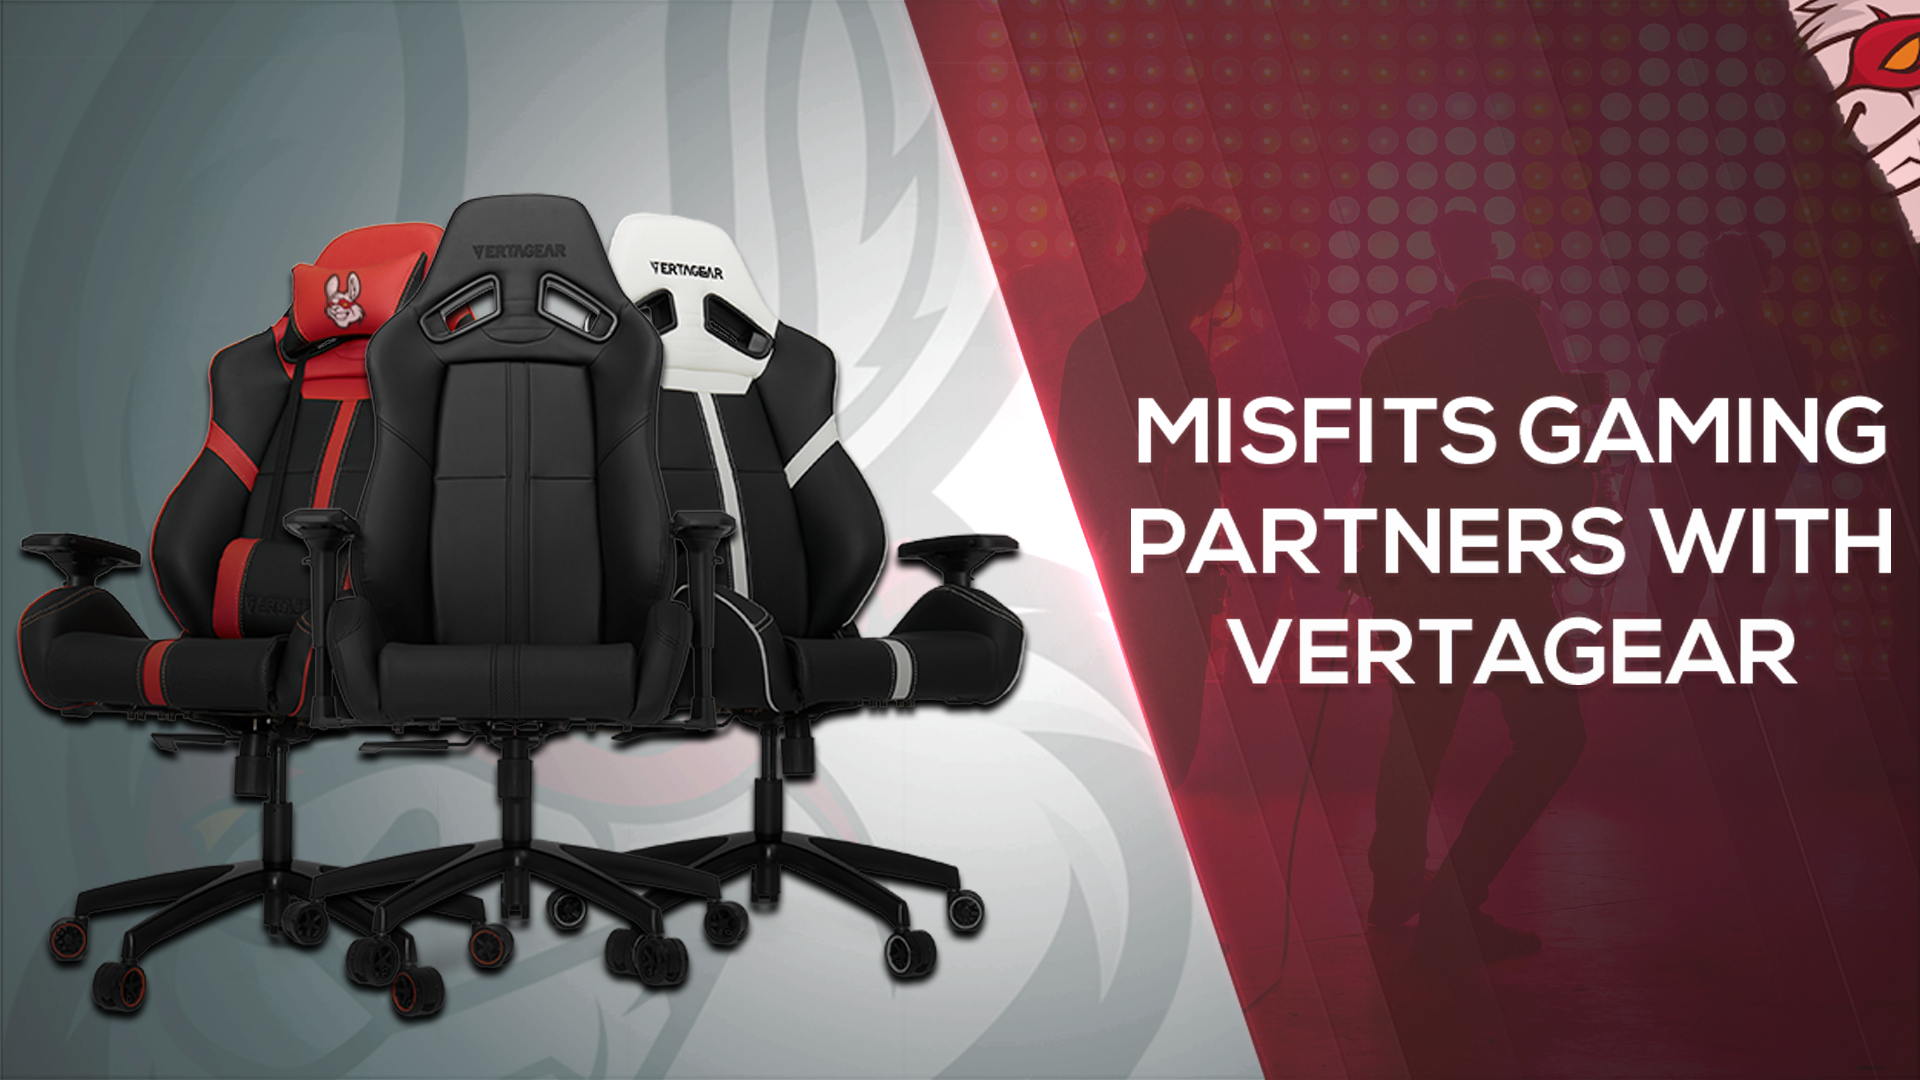 Misfits Partner with Vertagear